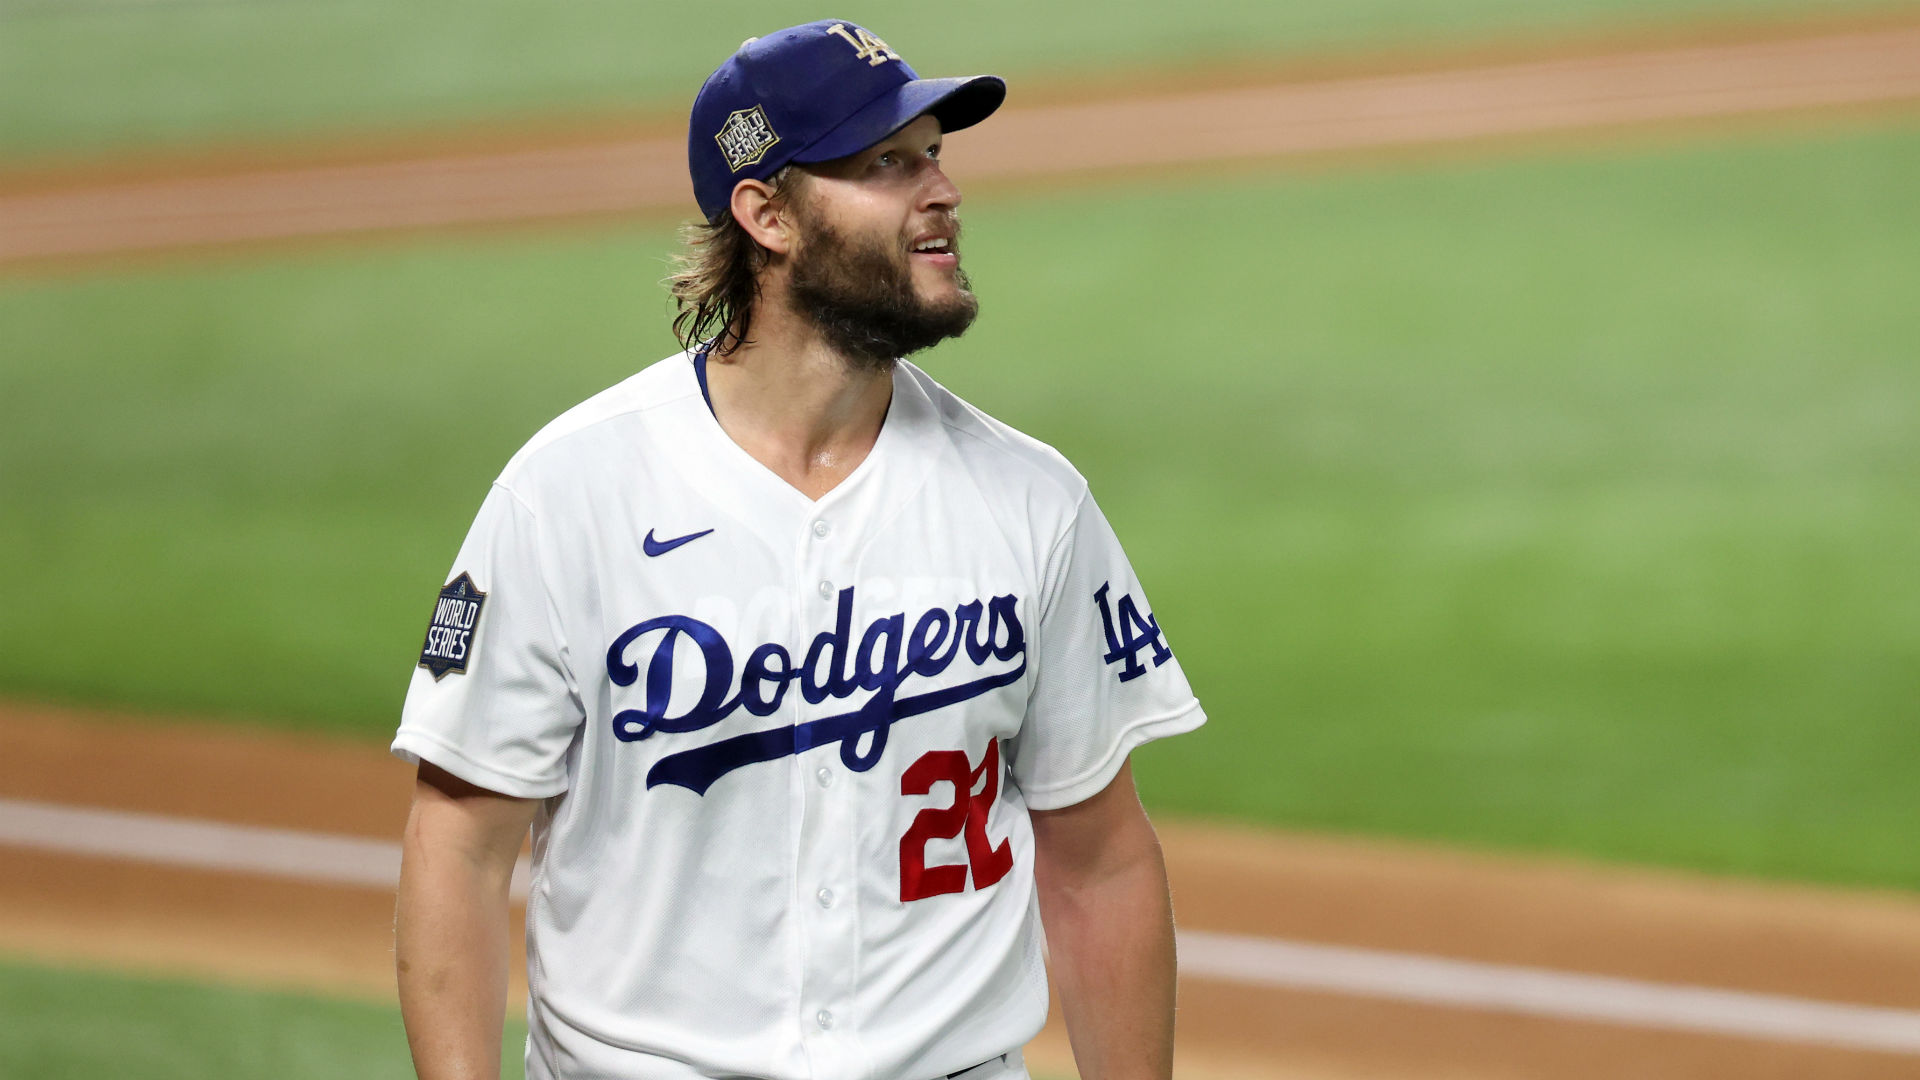 Dodgers vs. Rays score, highlights from Game 1 of the 2020 World Series 1